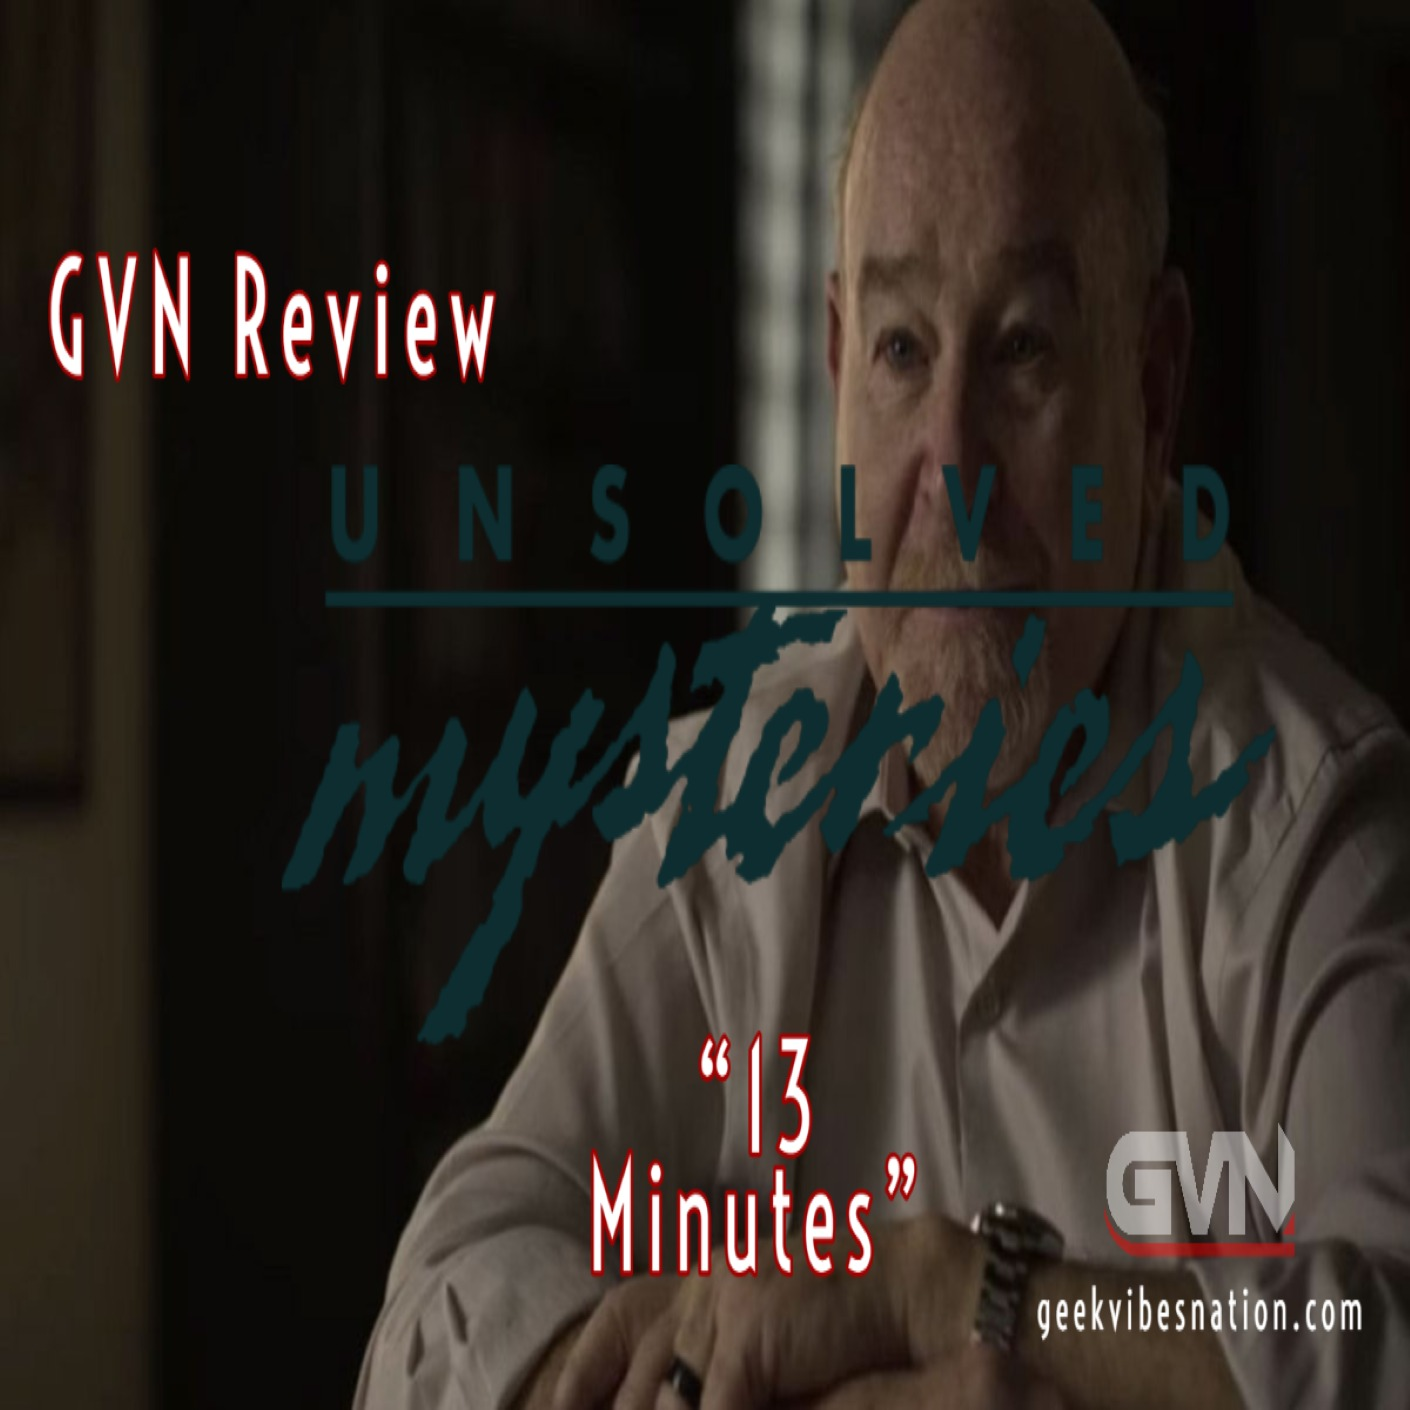 GVN Review: Unsolved Mysteries - 13 Minutes